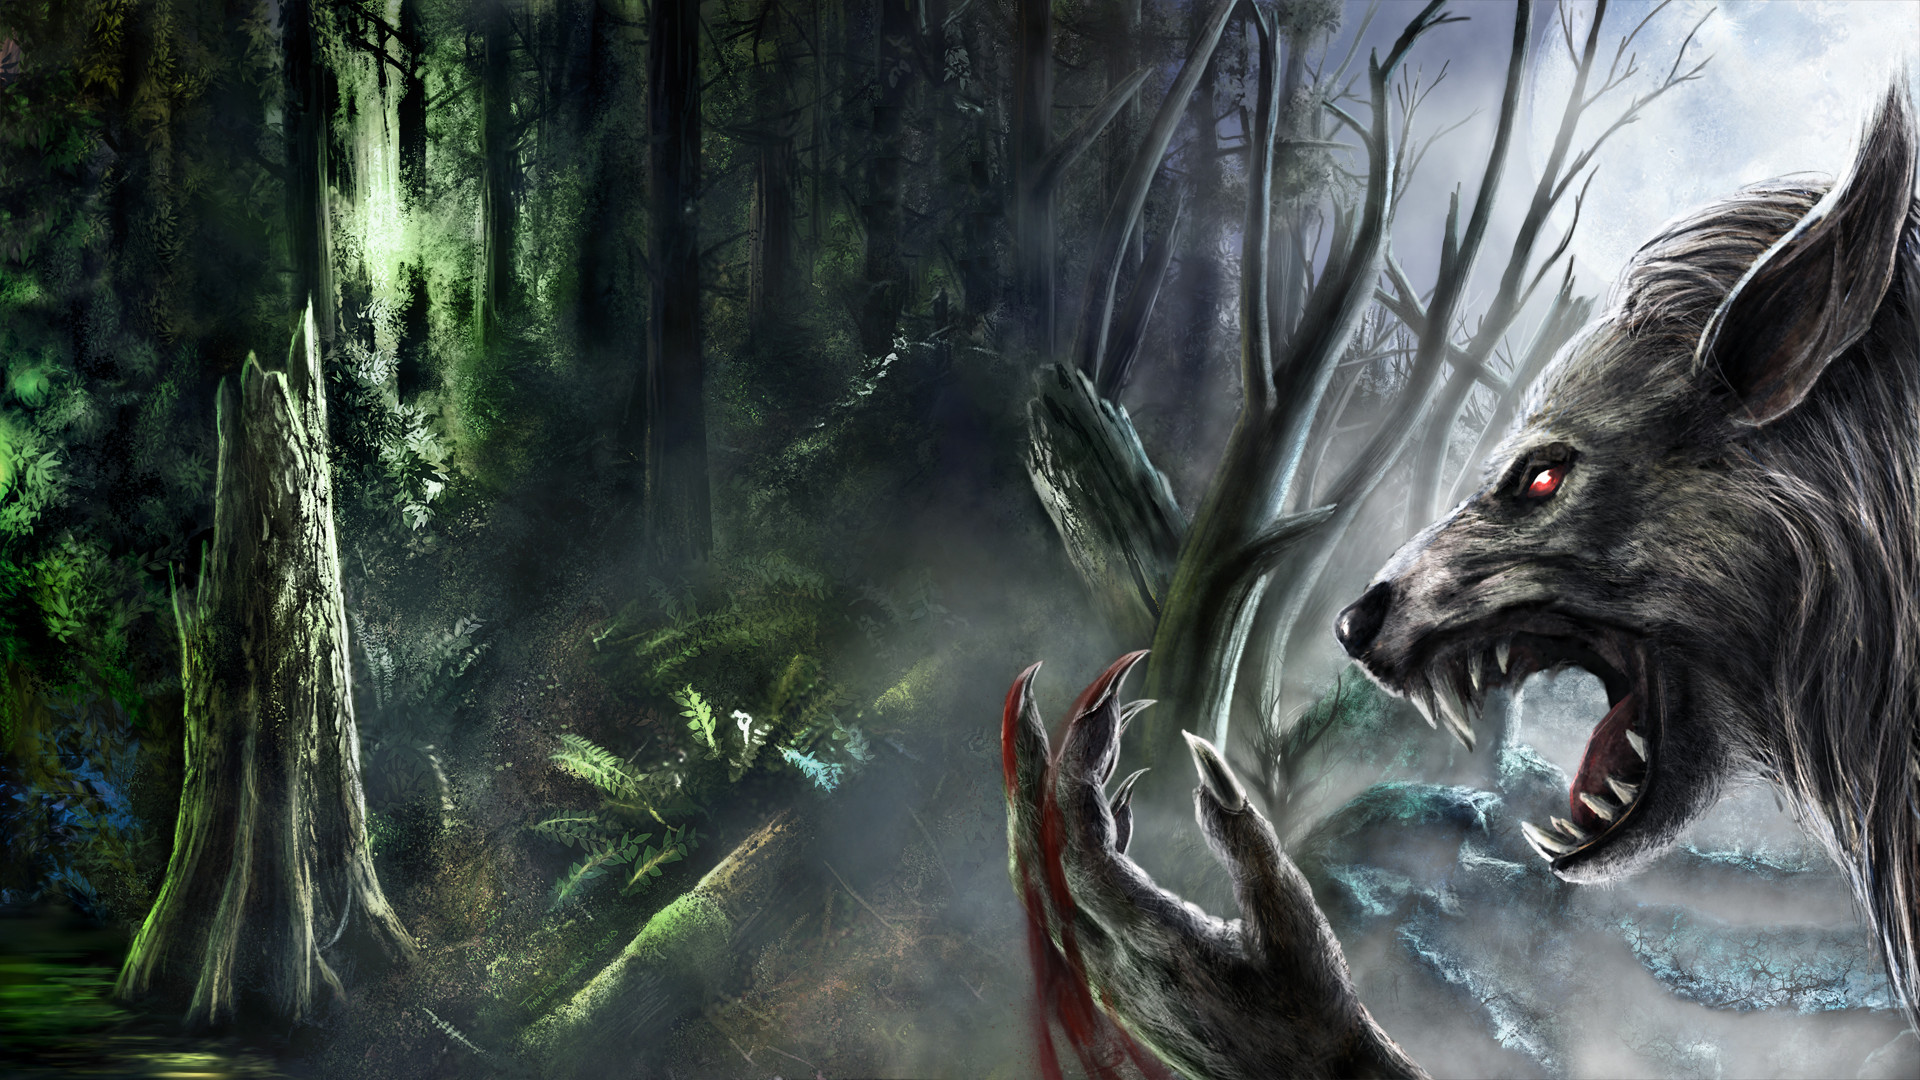 1920x1080 Werewolf fantasy art dark monster creatures blood fangs trees forest spooky  creepy scary evil wallpaper |